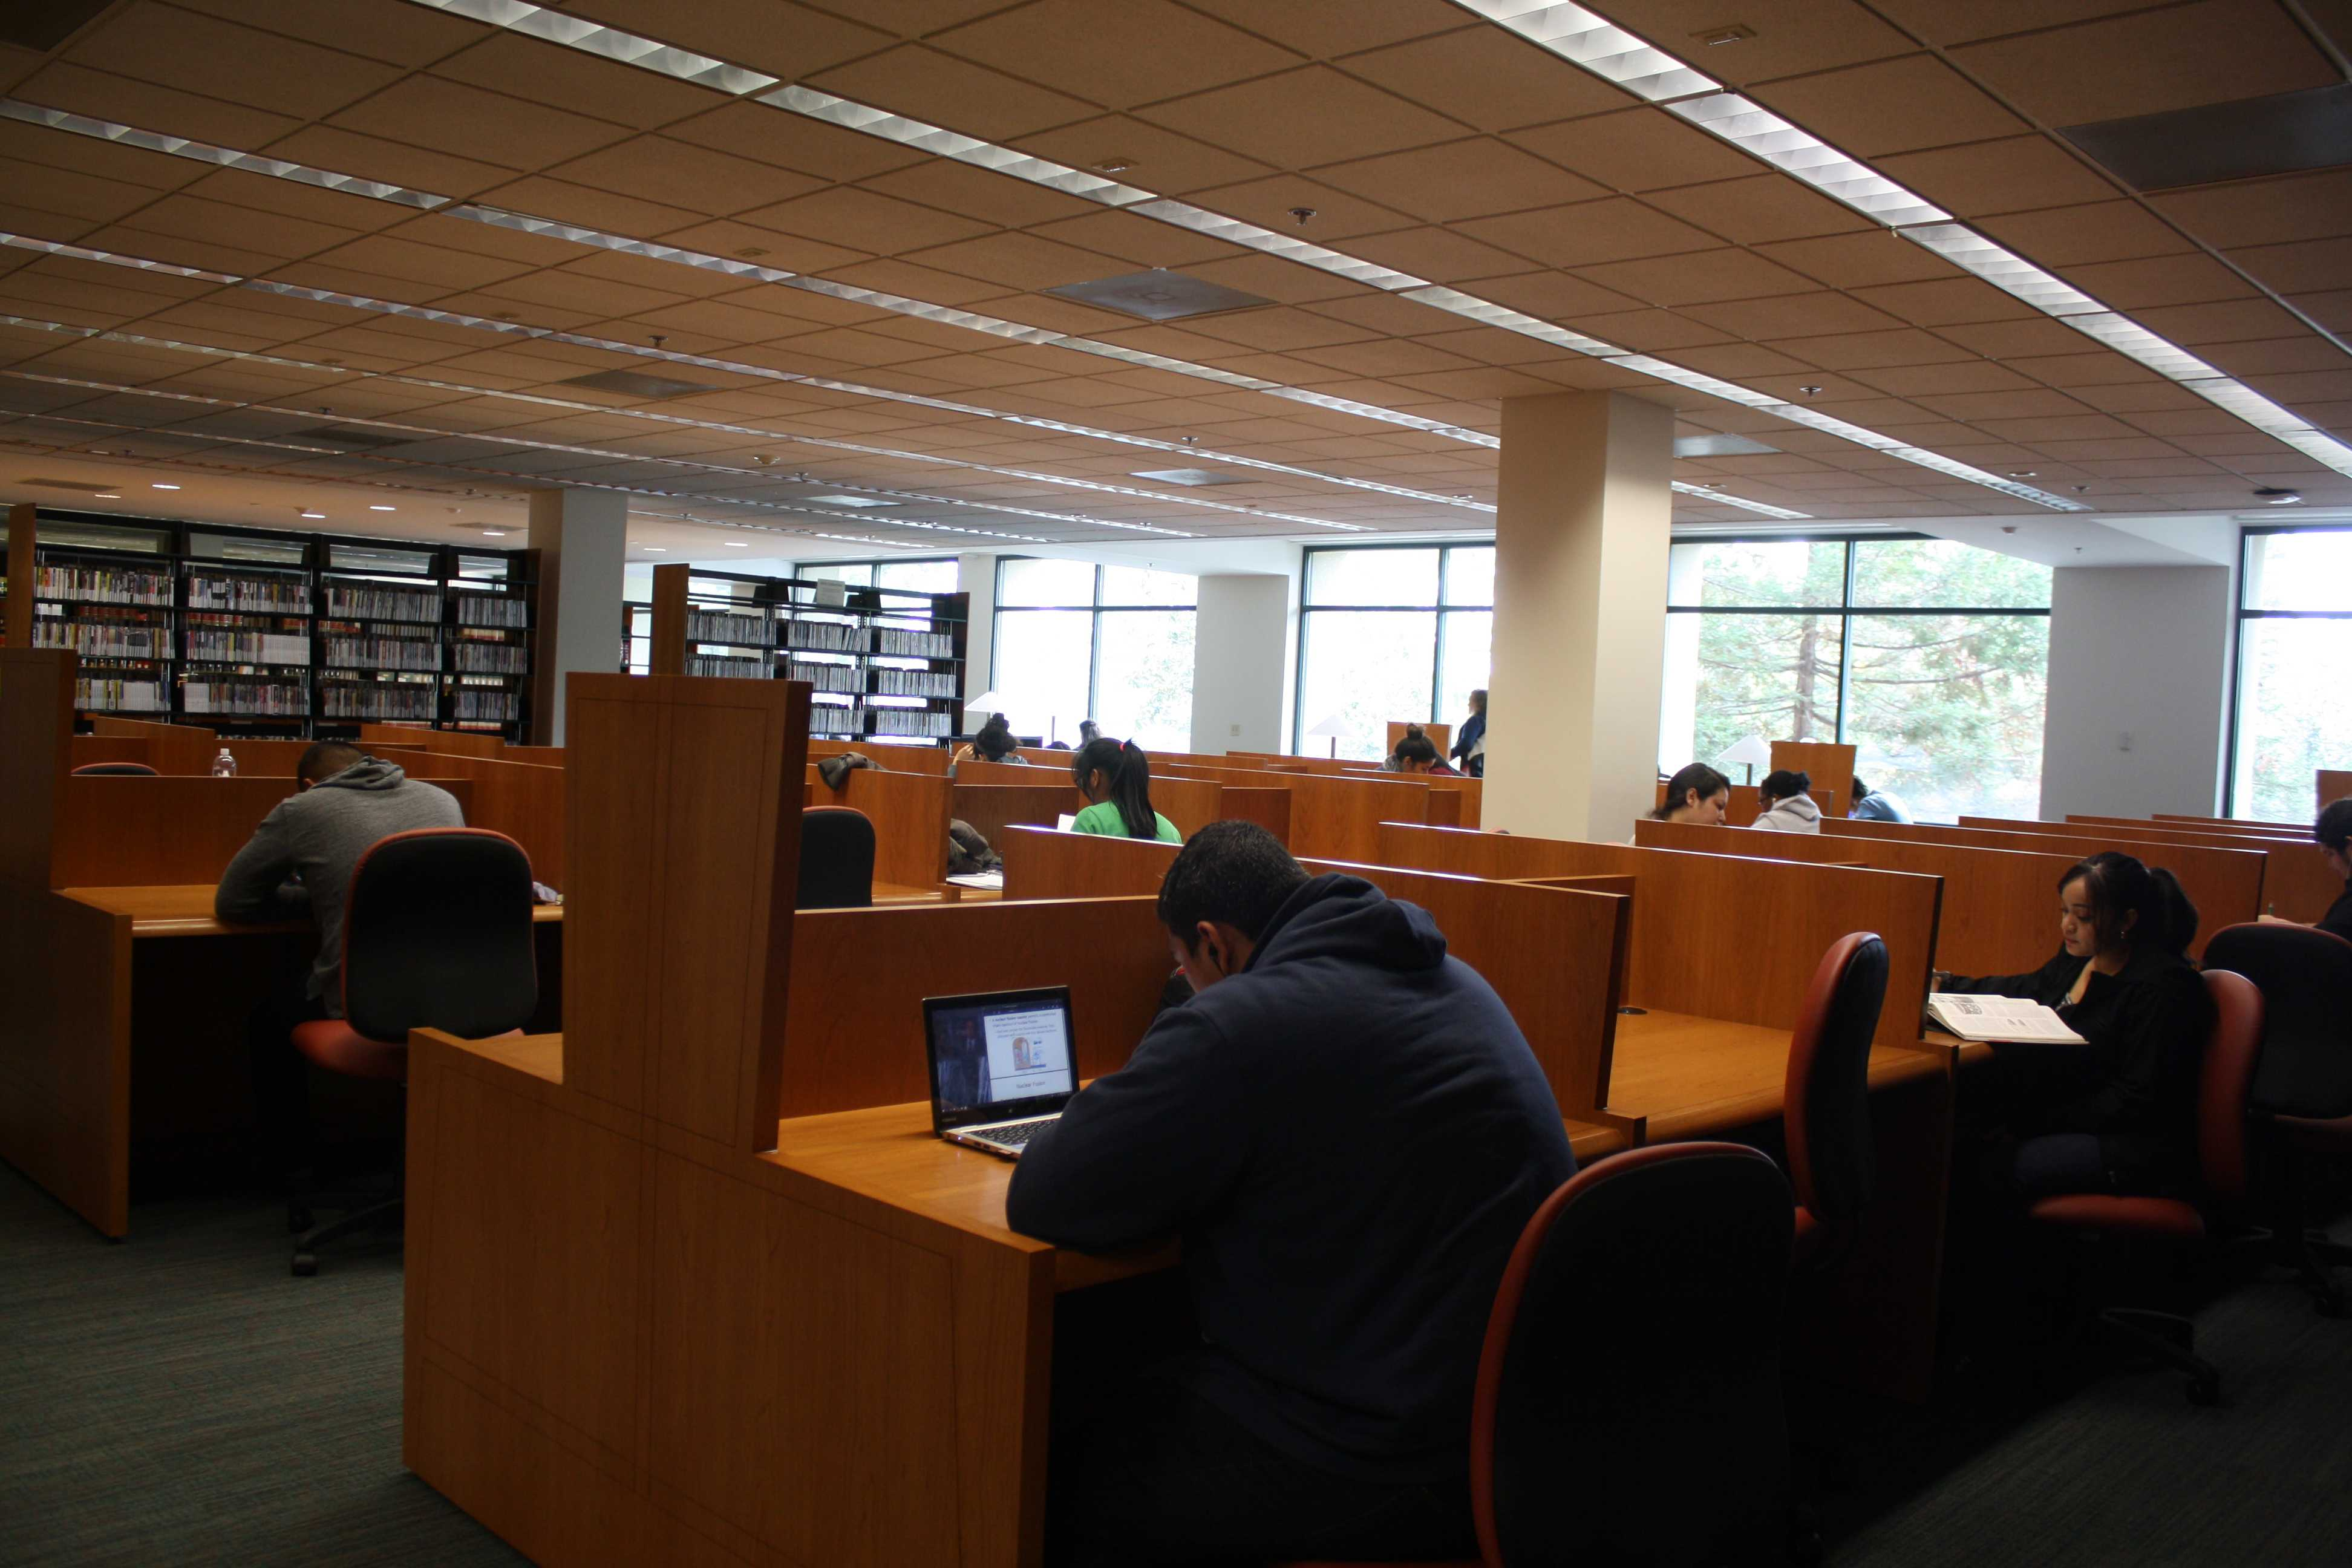 Students responding to extended library hours